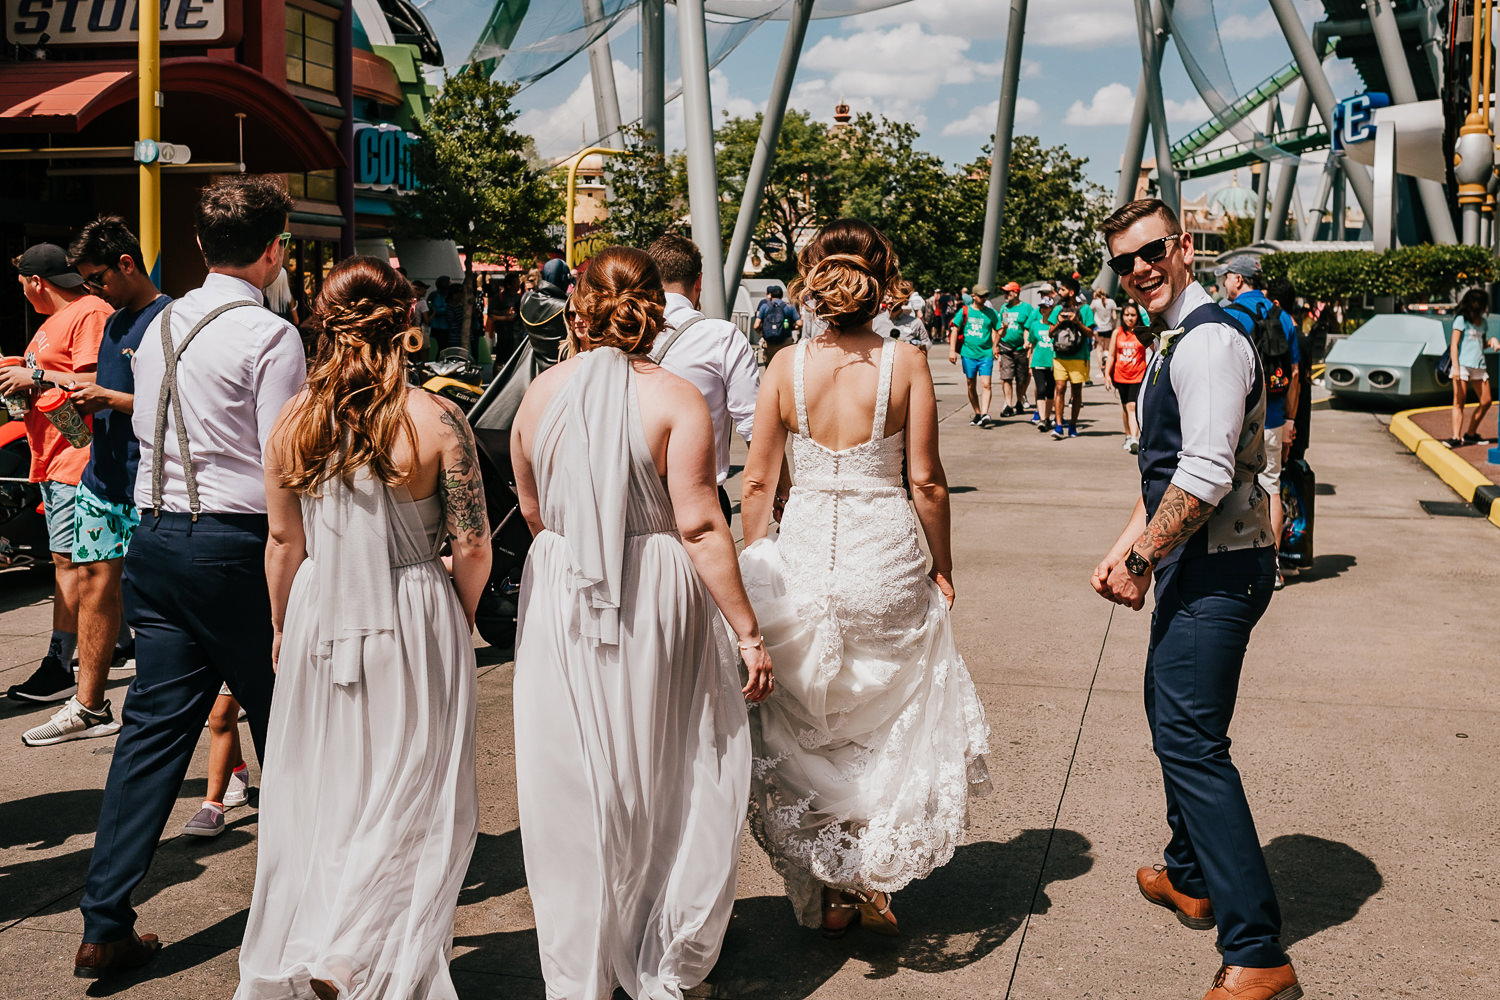 bridal party exiting island of adventure groom looking back smiling